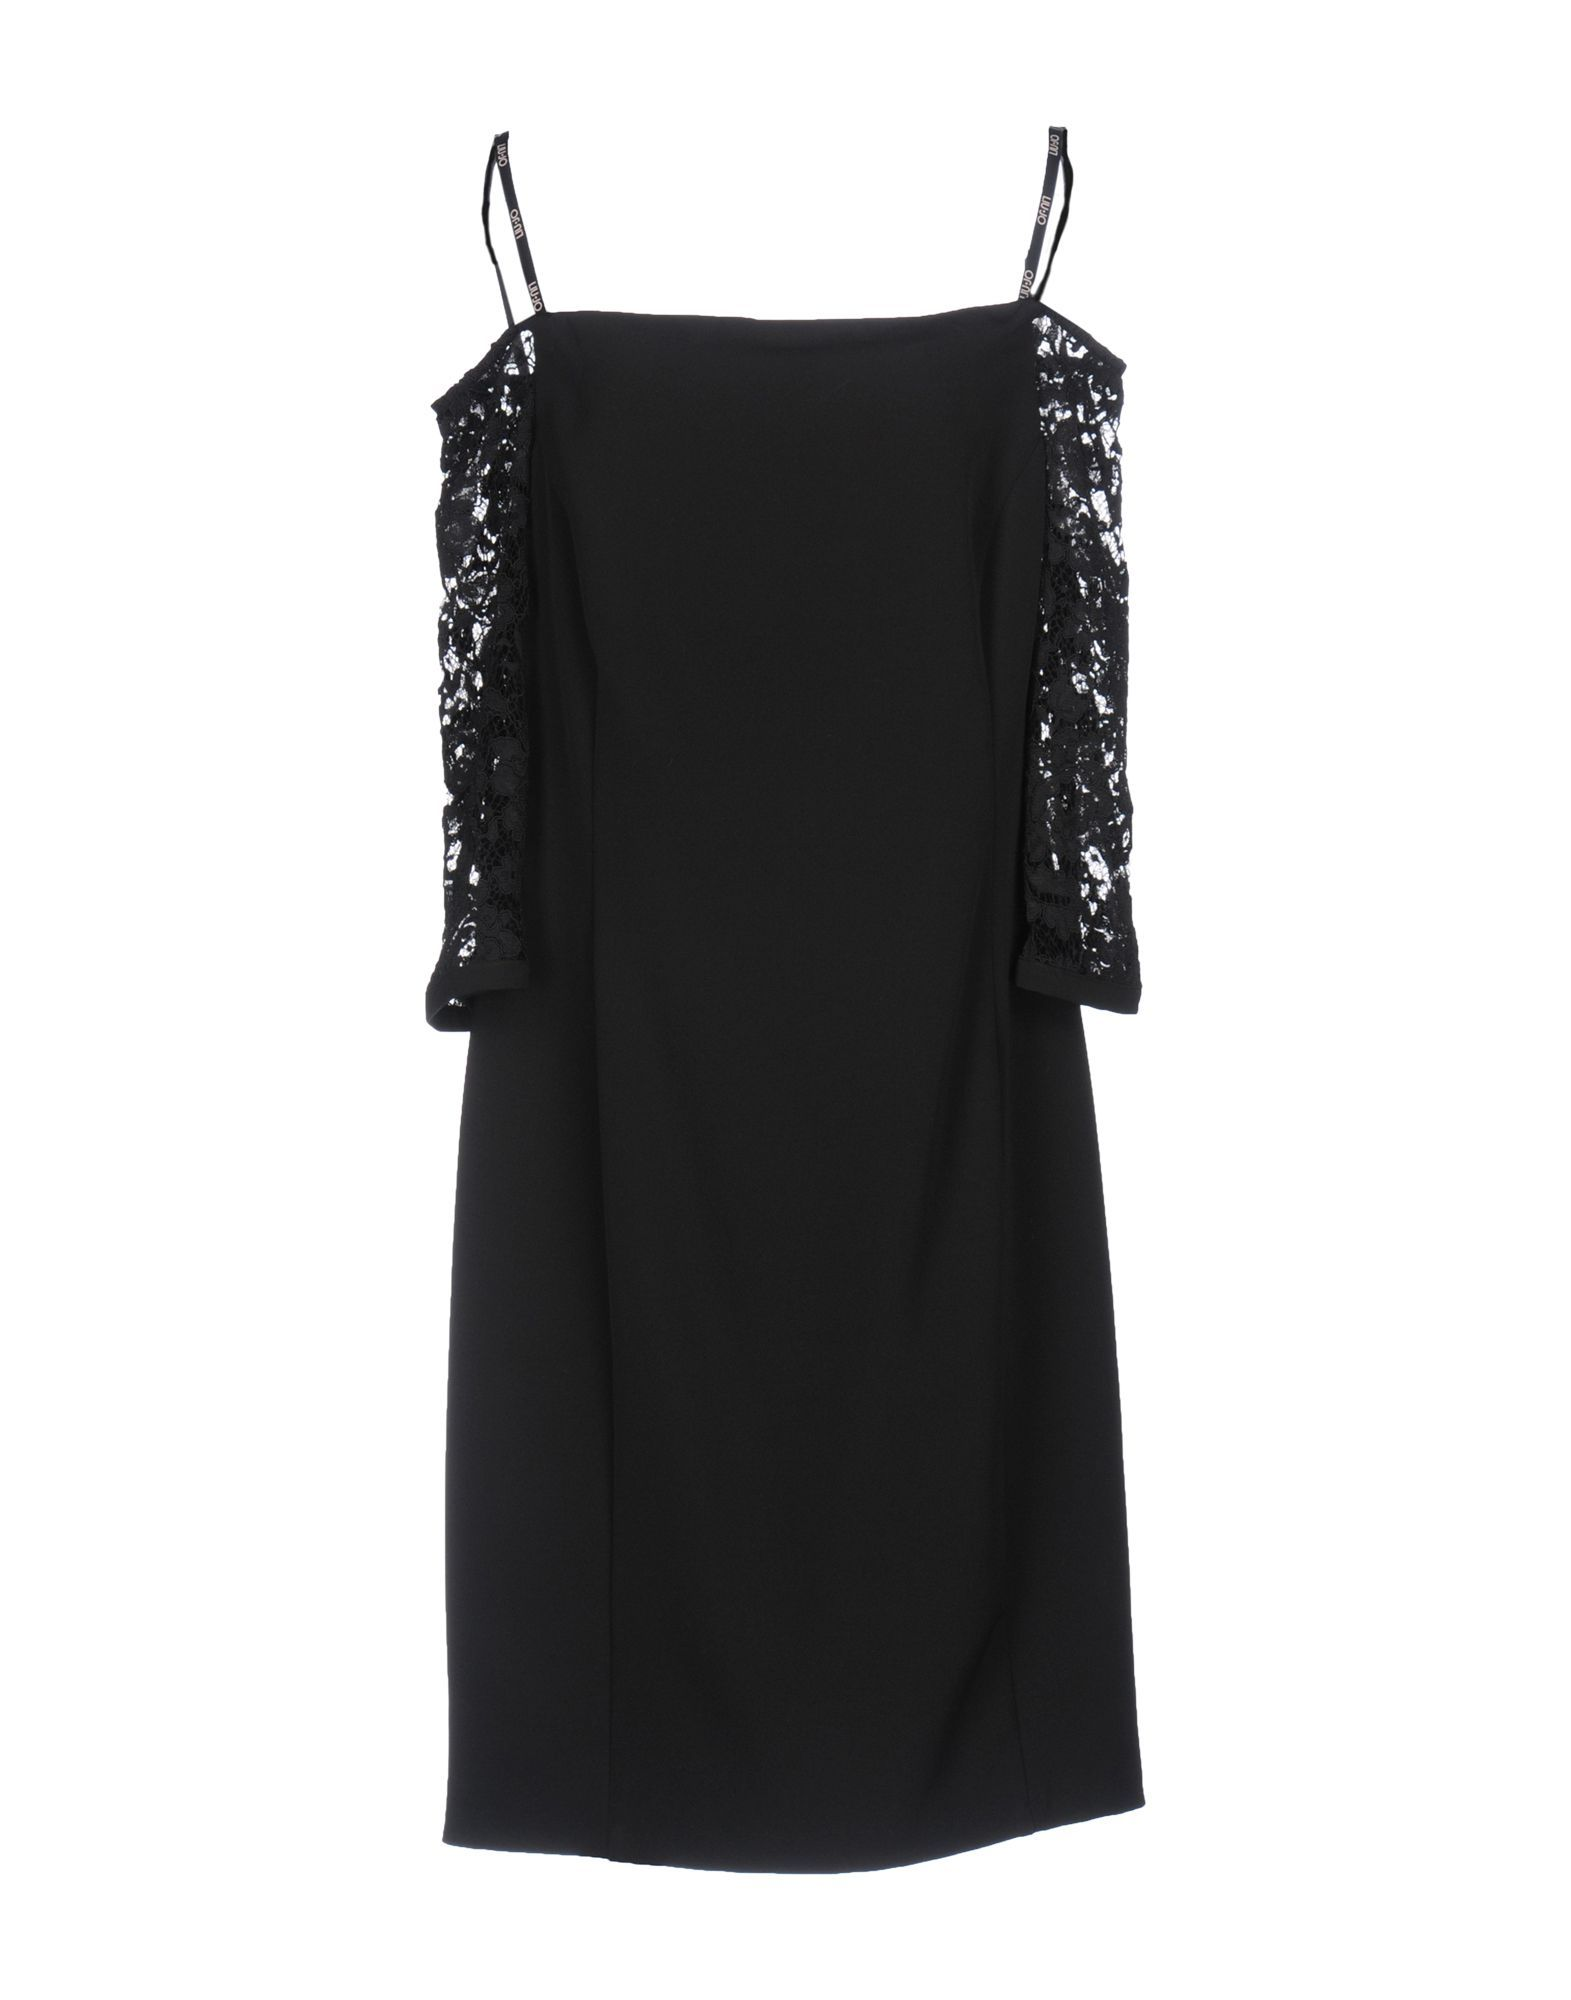 Liu Jo Black Lace Crepe Dress